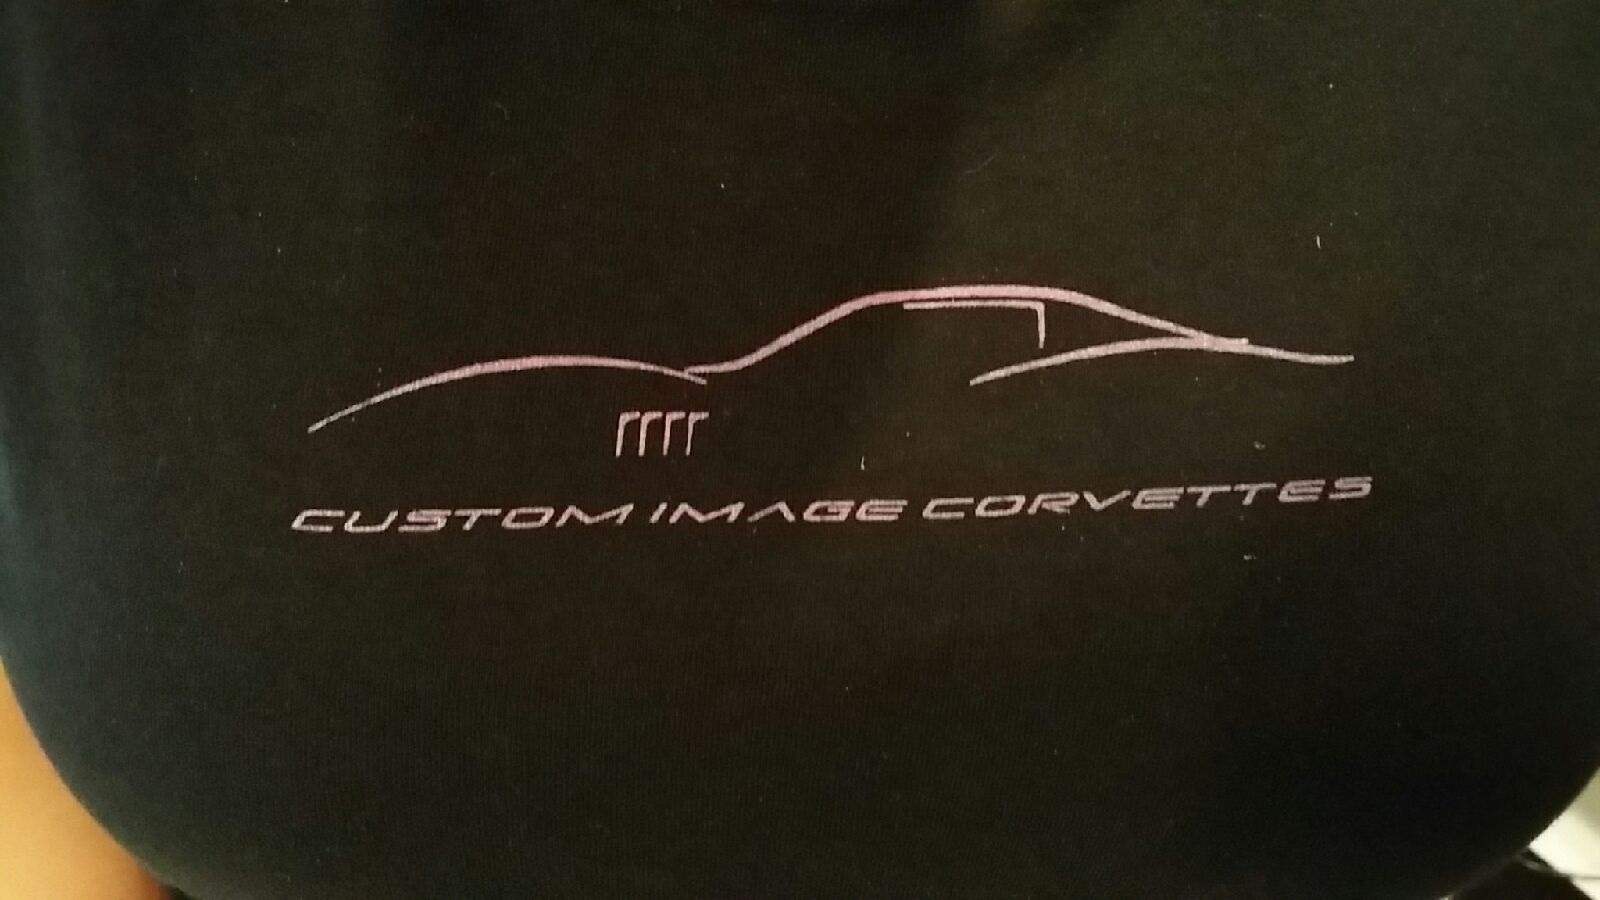 Corvette C6 For Sale >> Custom Image Corvettes T-shirts!!! - Custom Image Corvettes